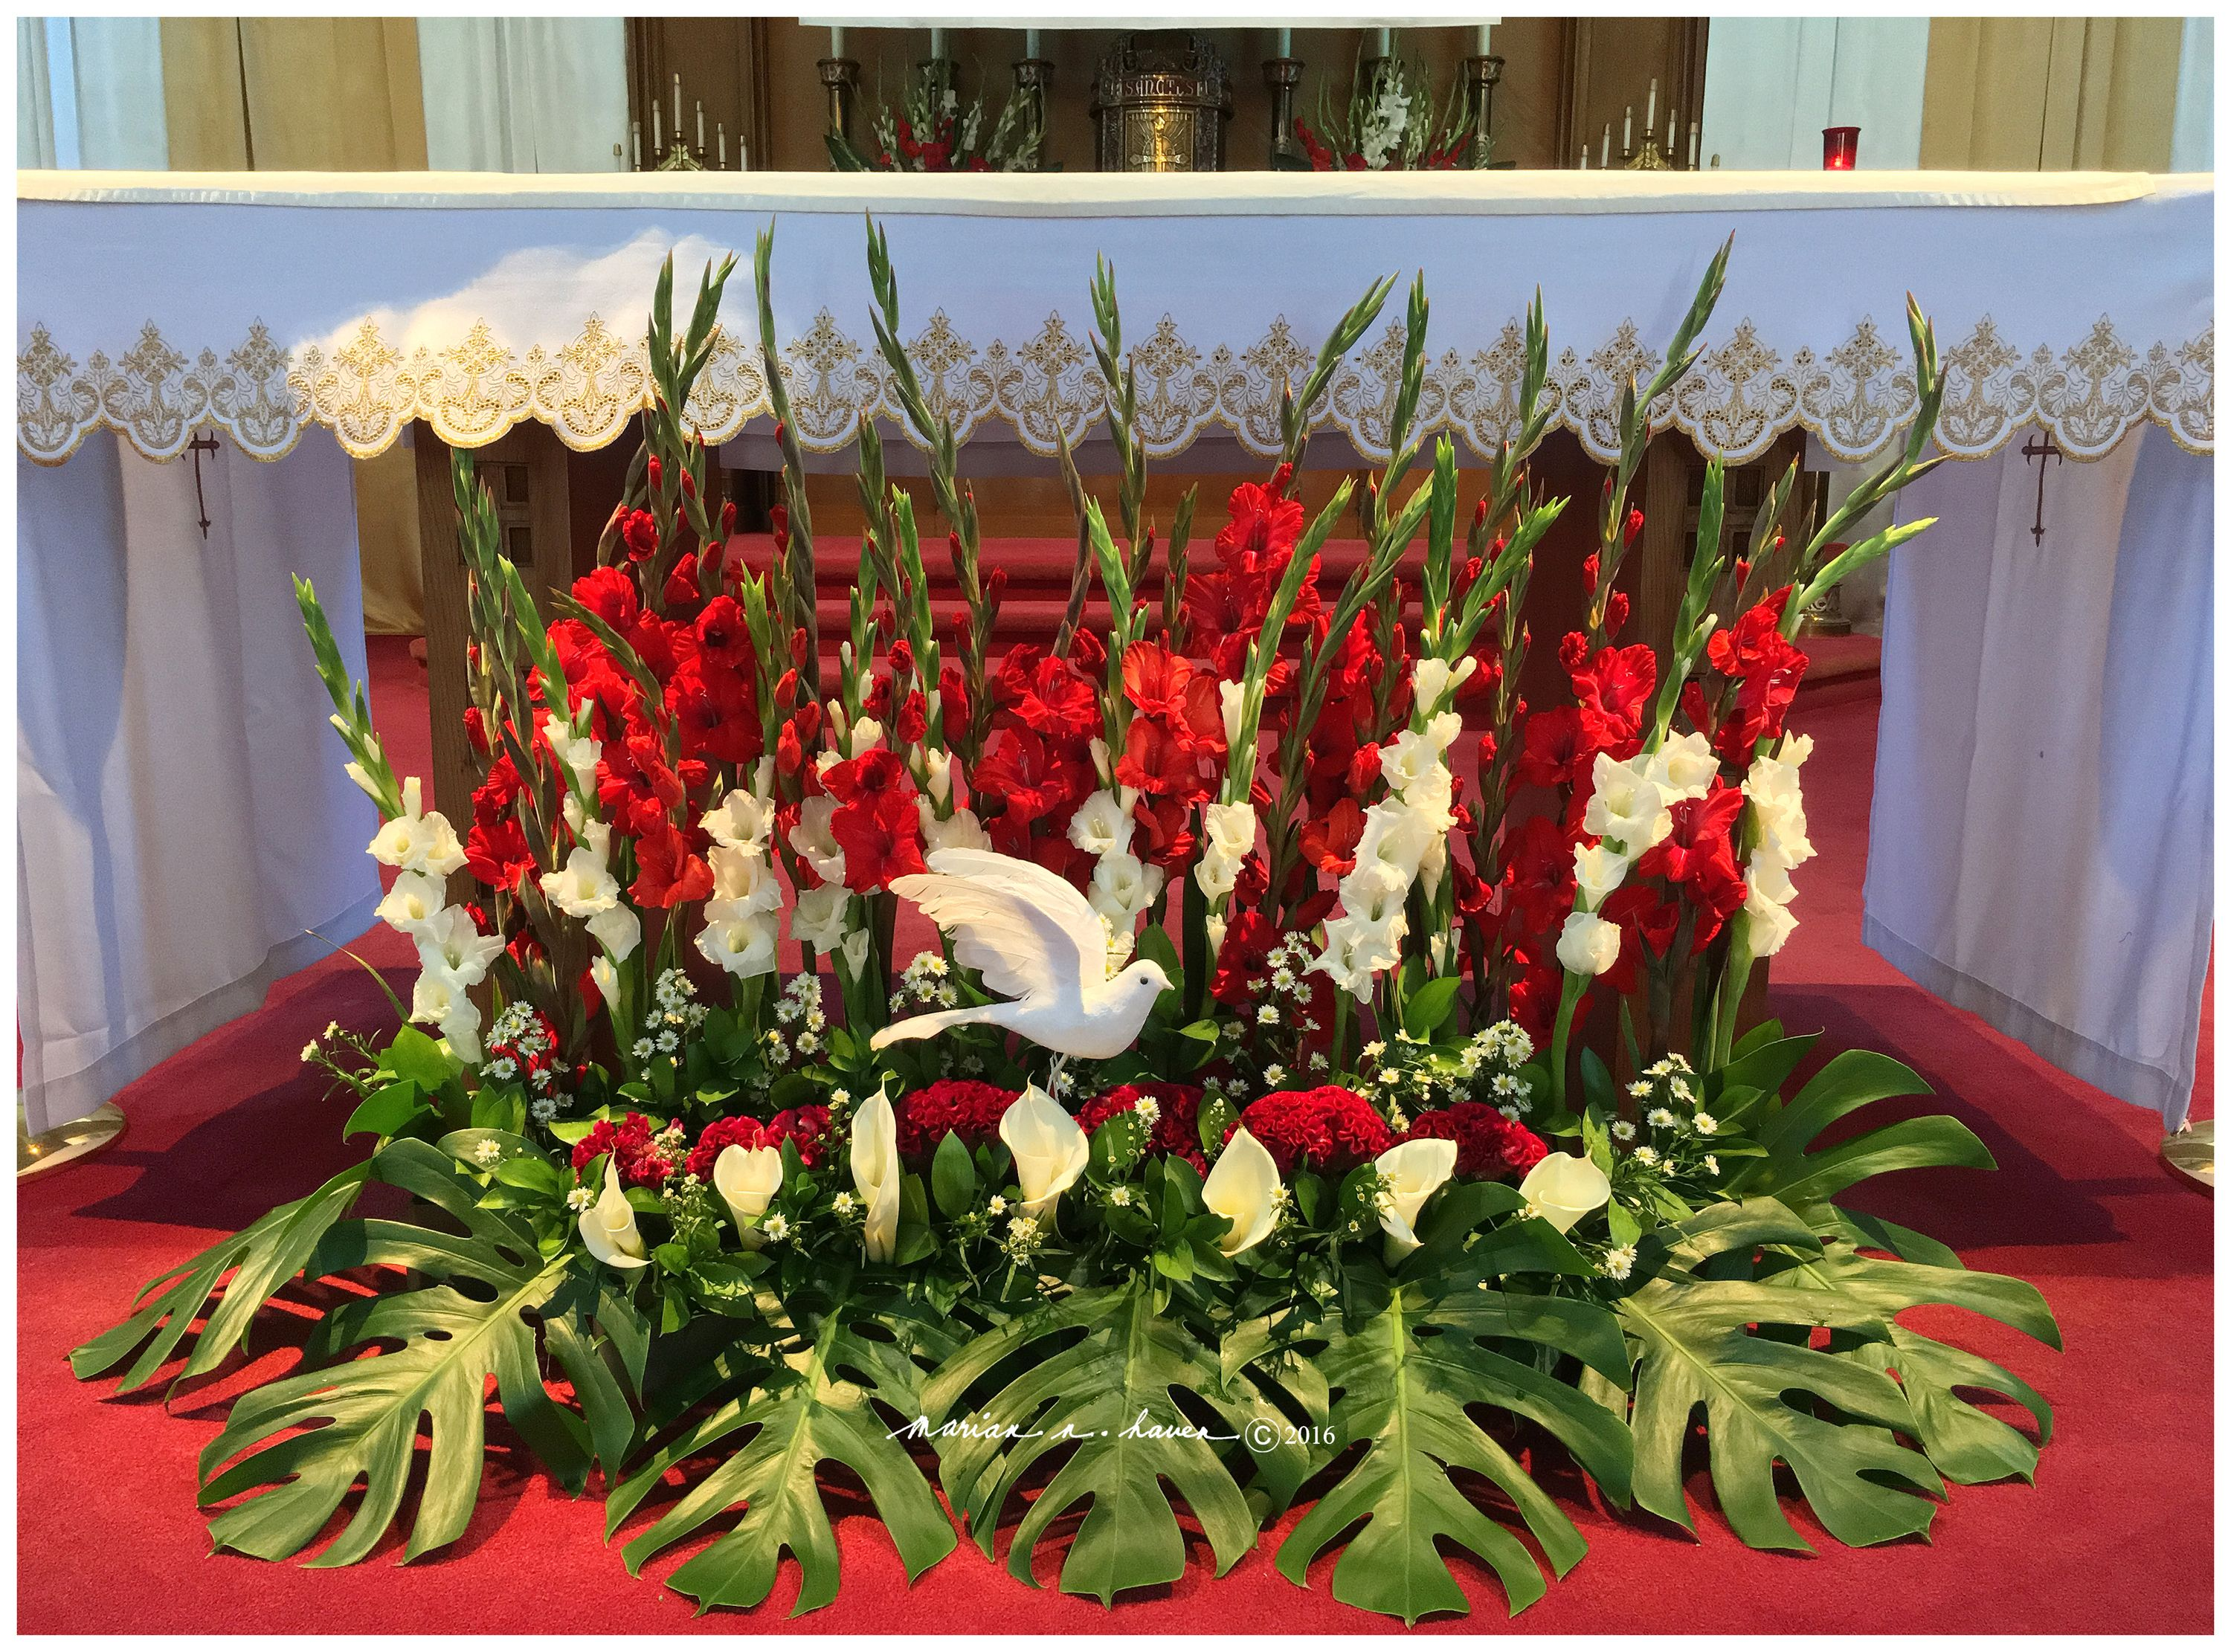 This is a 5 foot long floral arrangement for the st dunstan this is a 5 foot long floral arrangement for the st dunstan catholic church confirmation of its 8th grade students april 21 2016 marian h izmirmasajfo